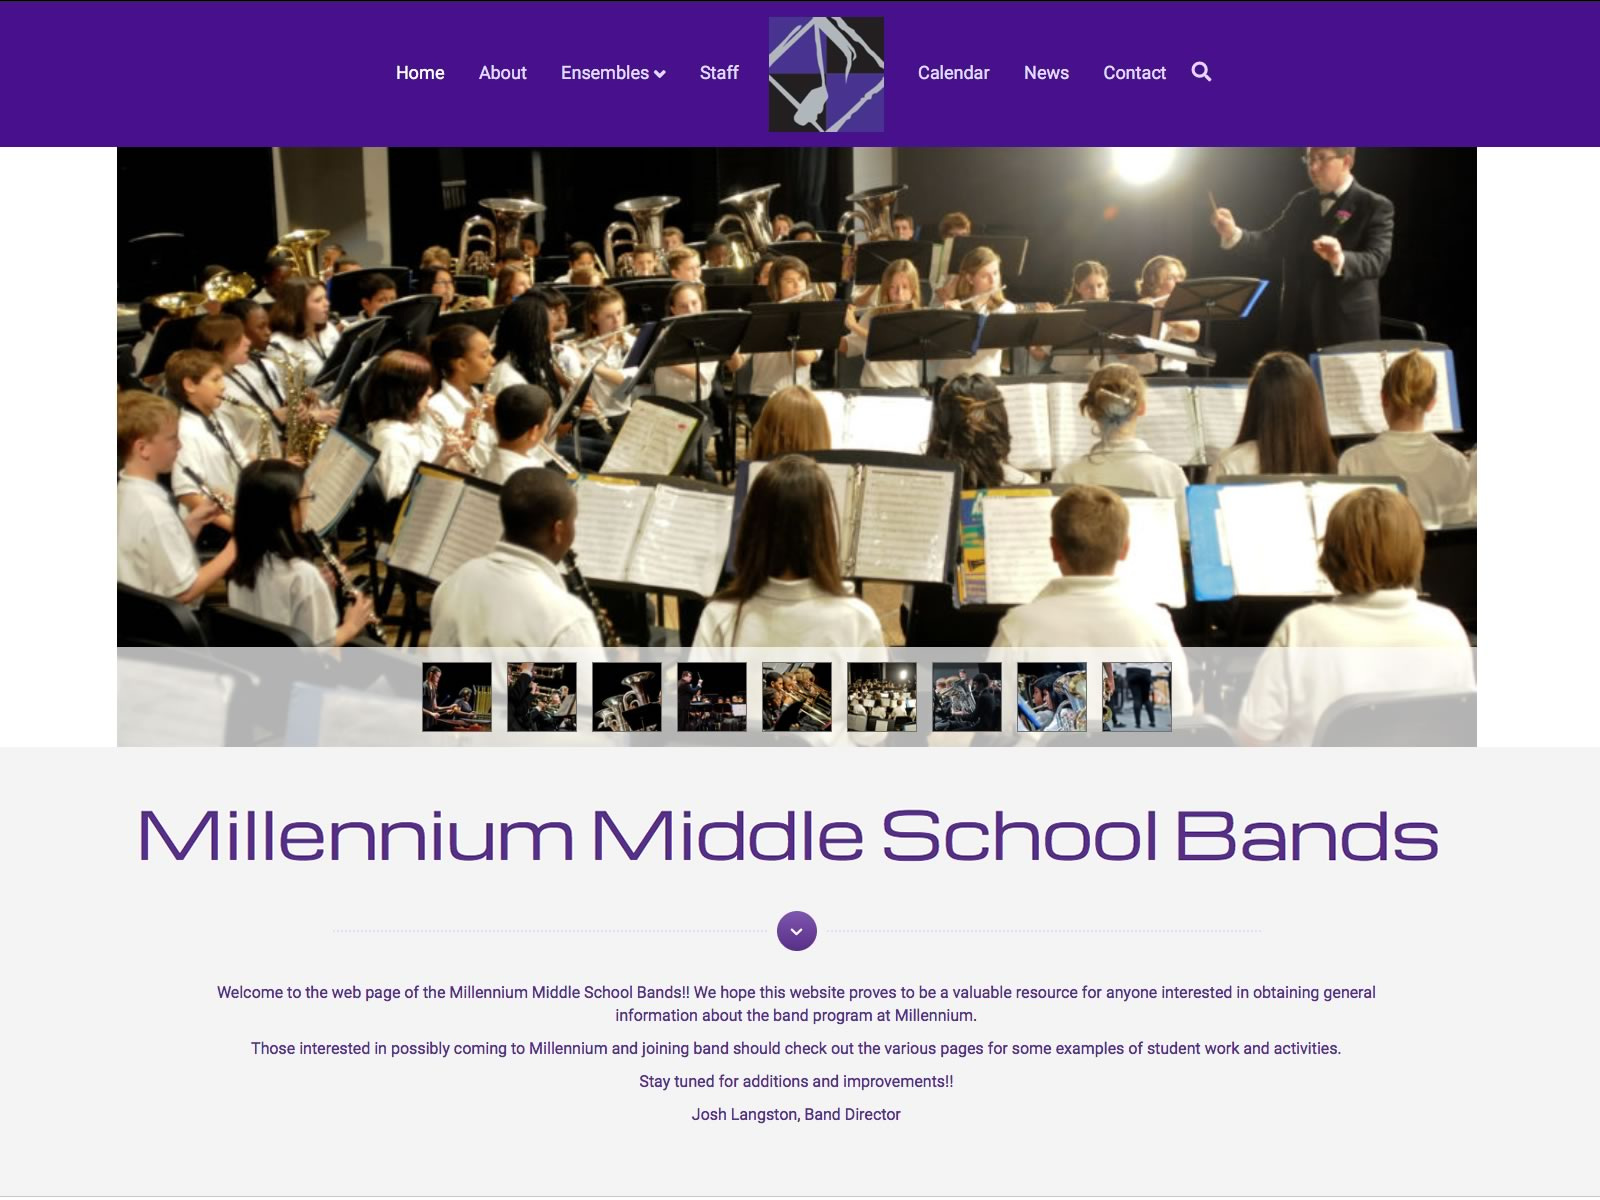 Millennium Middle School Bands